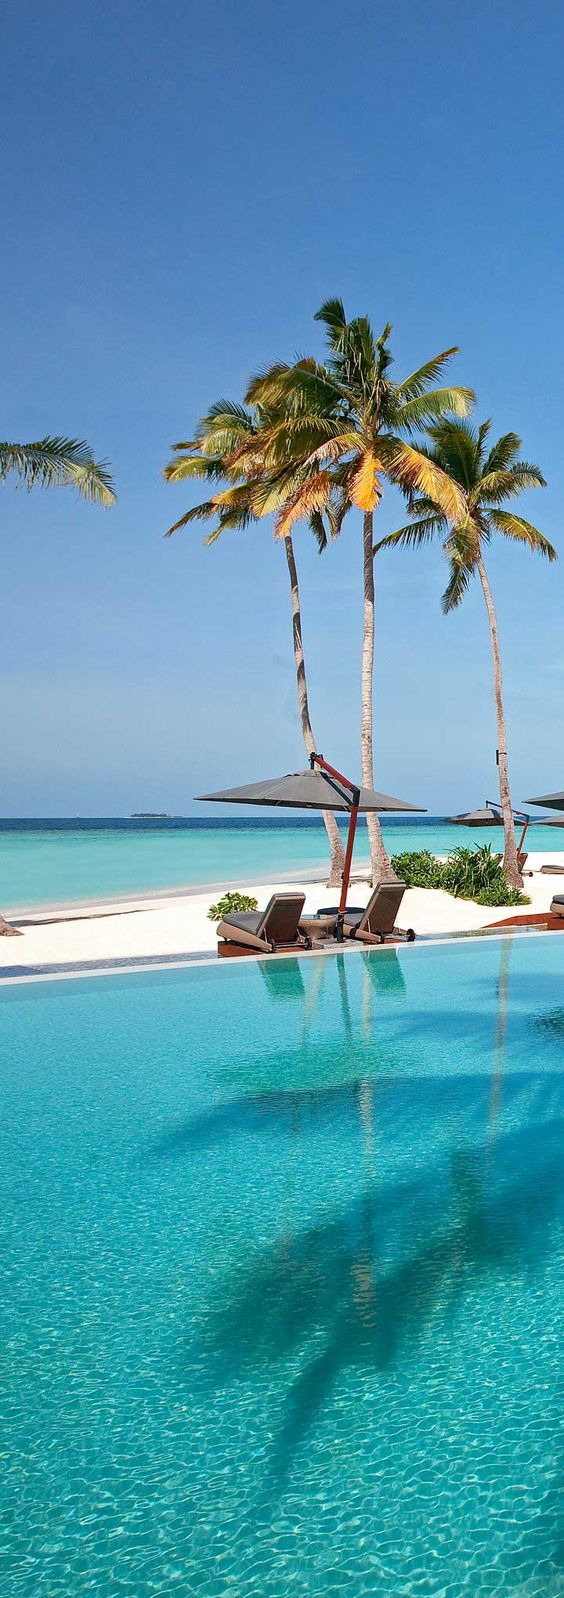 Bask in the sun in the Maldives  ♥ ♥ www.paintingyouwithwords.com